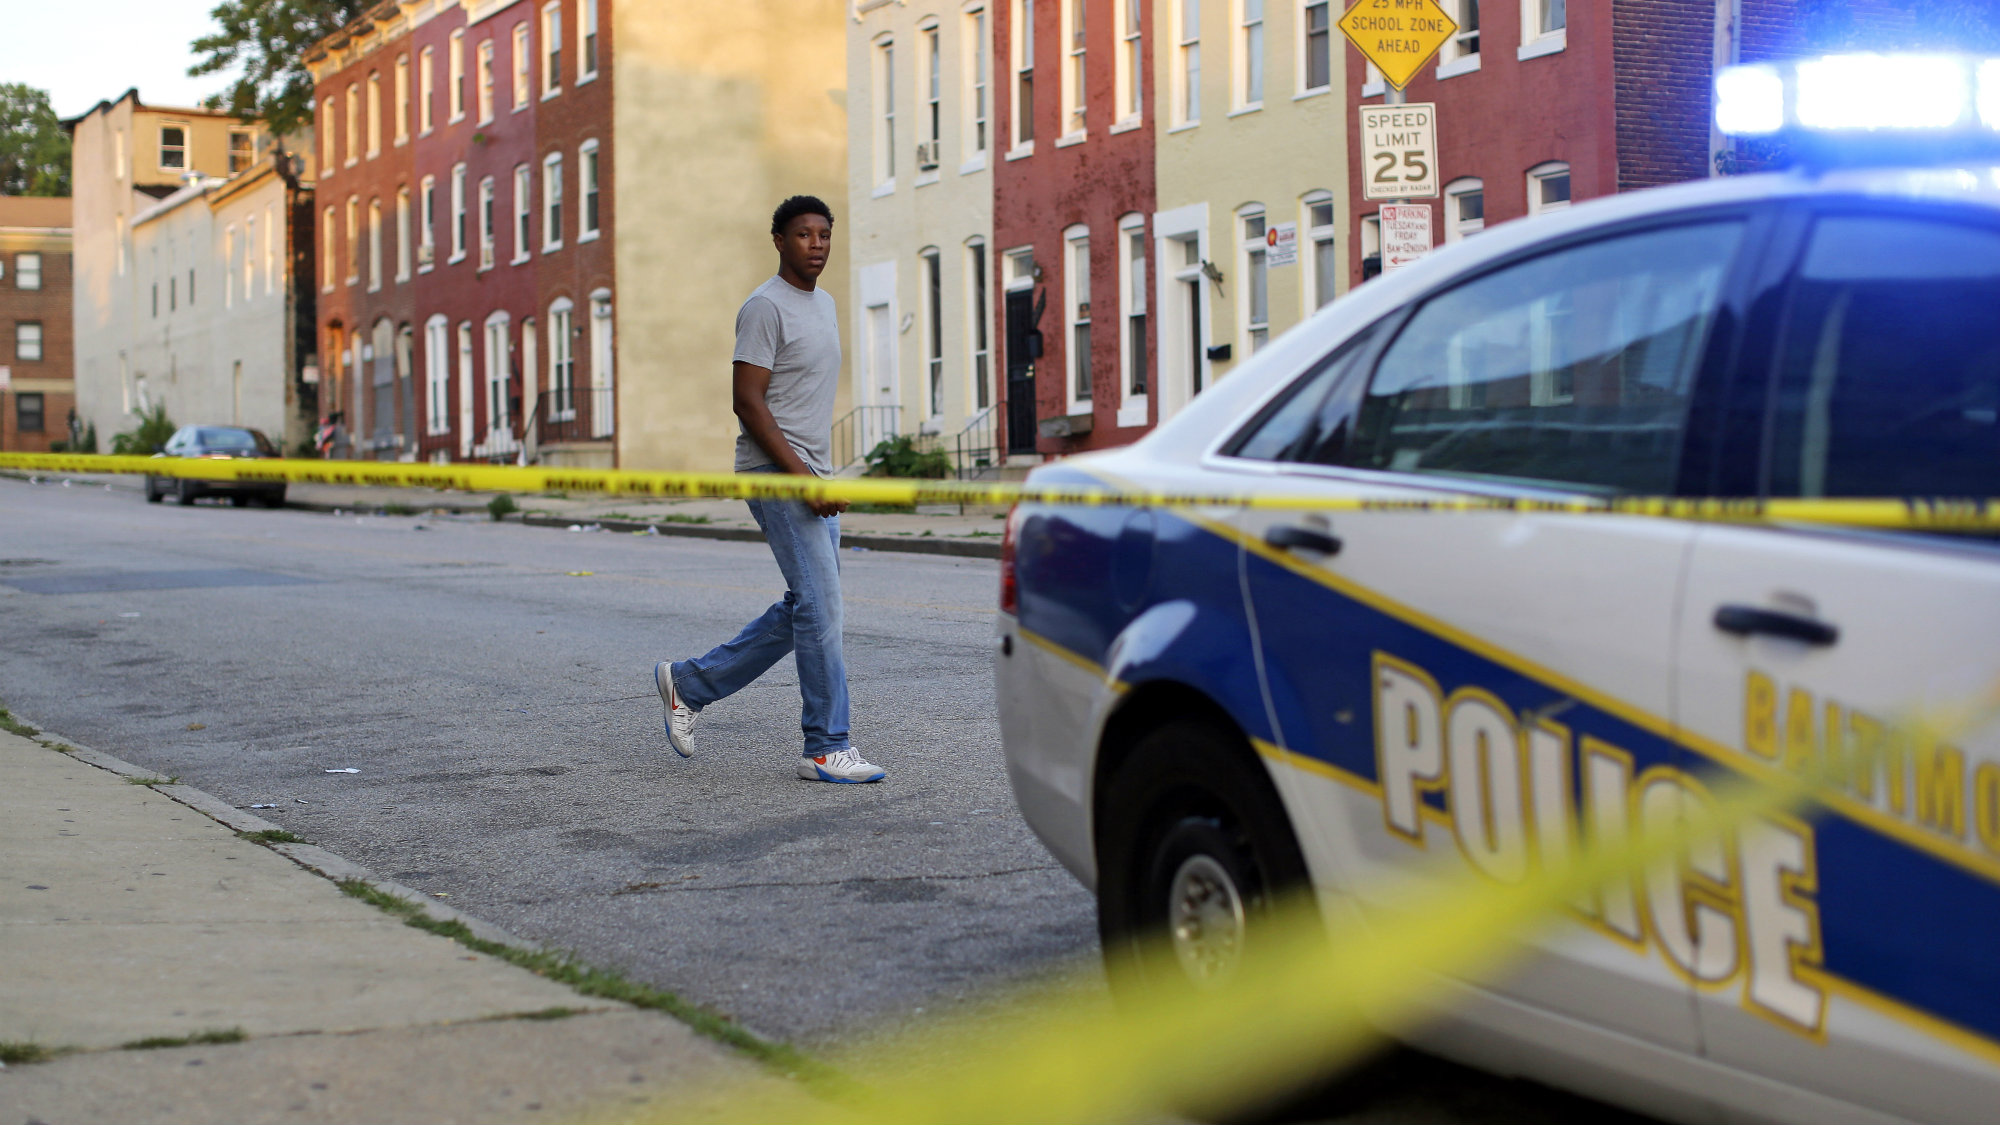 In this July 30, 2015 picture, a man walks past a corner where a victim of a shooting was discovered in Baltimore. Murders are spiking again in Baltimore, three months after Freddie Gray's death in police custody sparked riots.